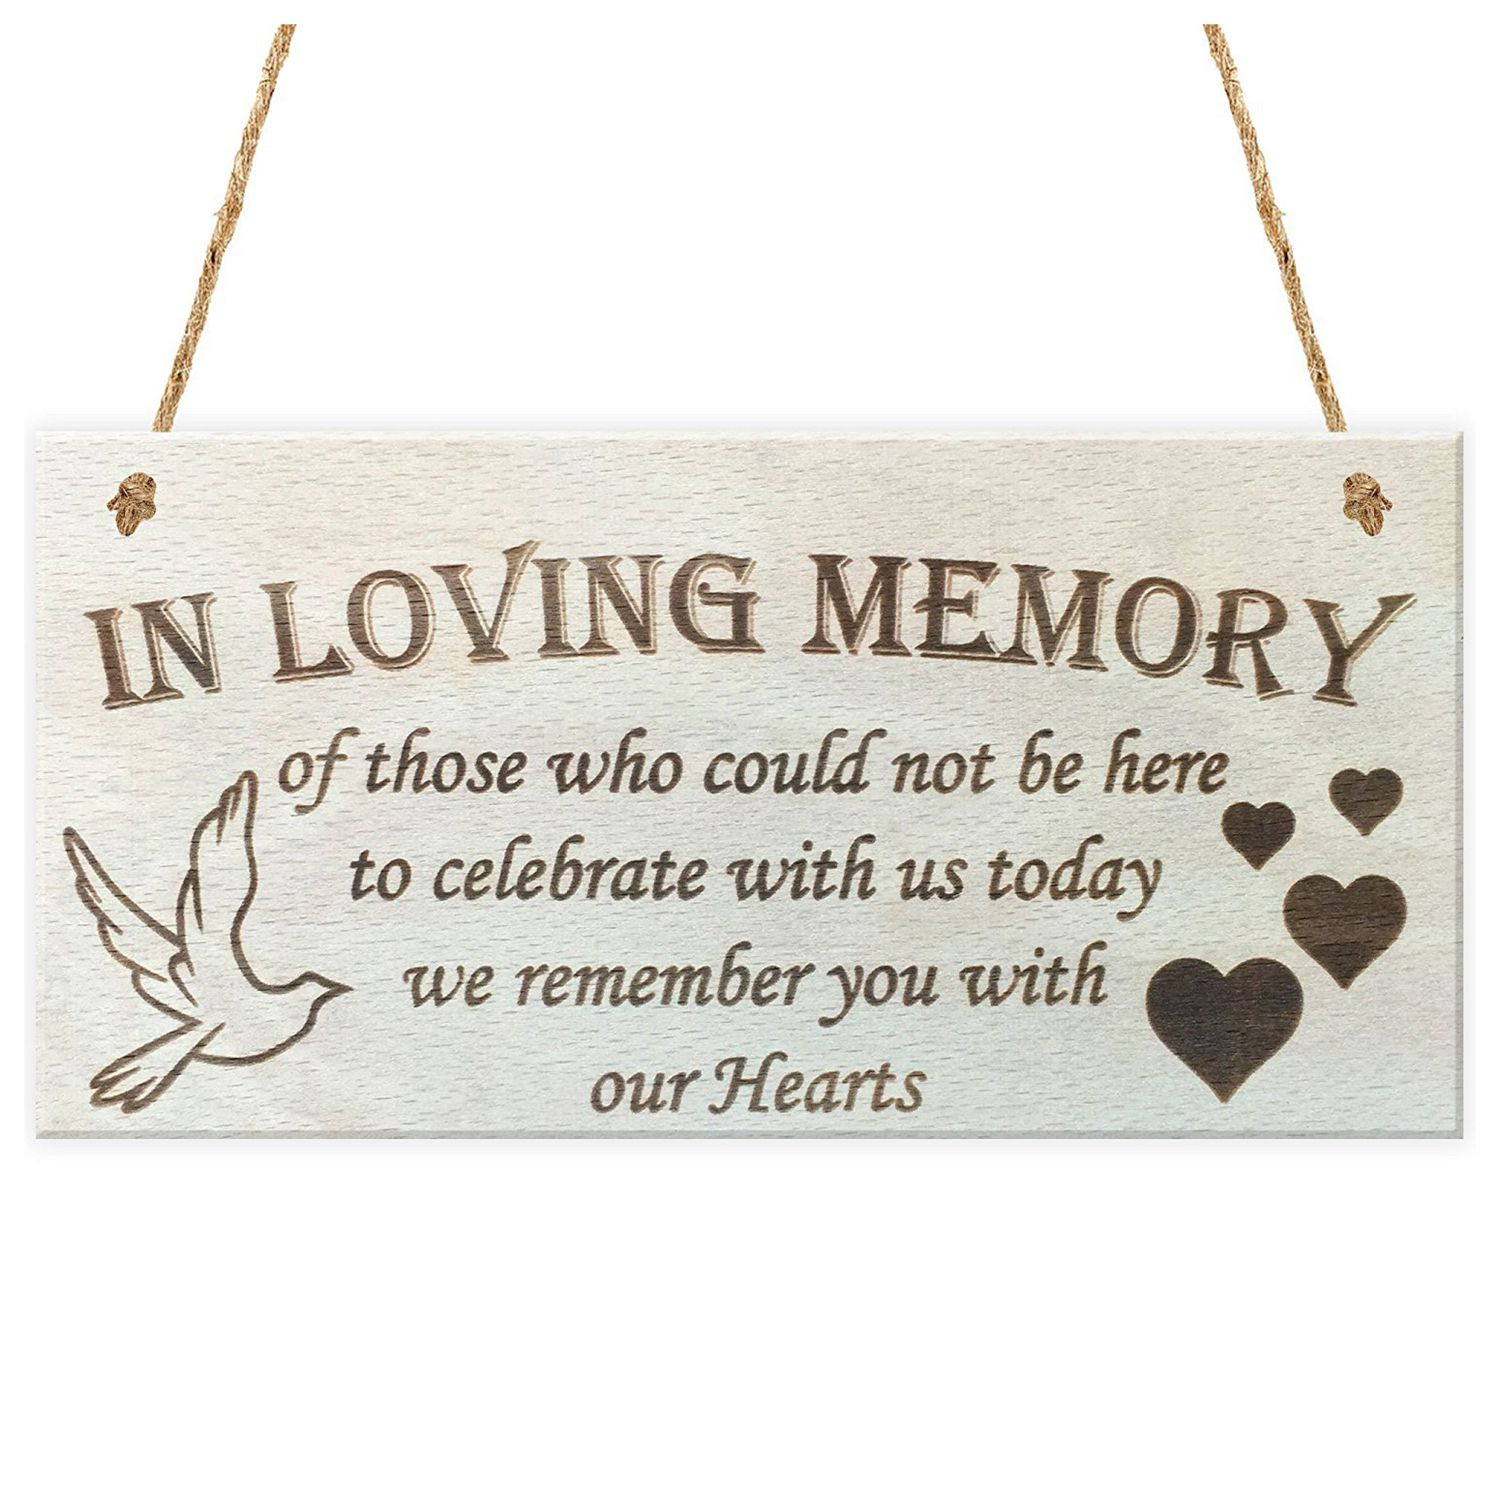 In <font><b>Loving</b></font> Memory Of Those Who <font><b>Could</b></font> Not <font><b>Be</b></font> Here To Celebrate With Us Today We Remember You With Our Hearts Wooden Hanging Plaq